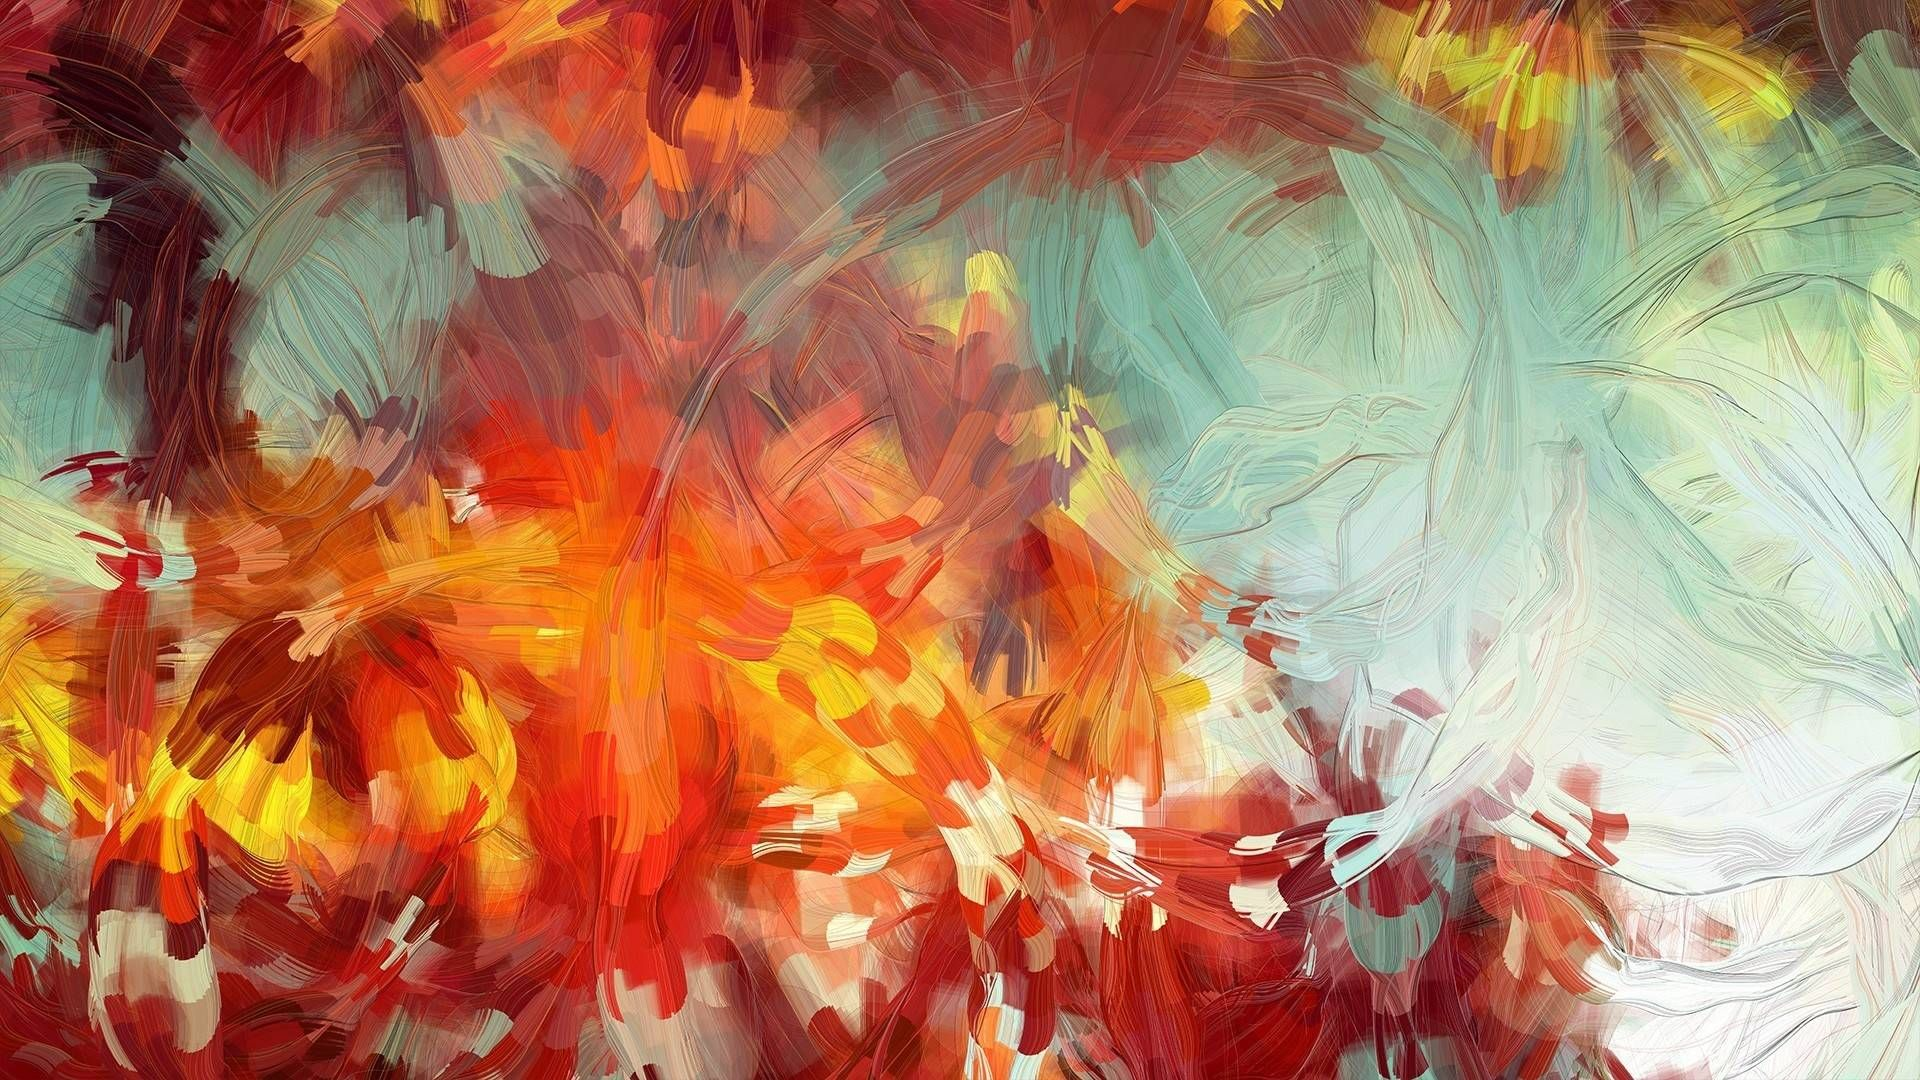 Tremendous Image For Abstract Christmas Painting Hd Wallpapers Interior Design Ideas Gentotryabchikinfo